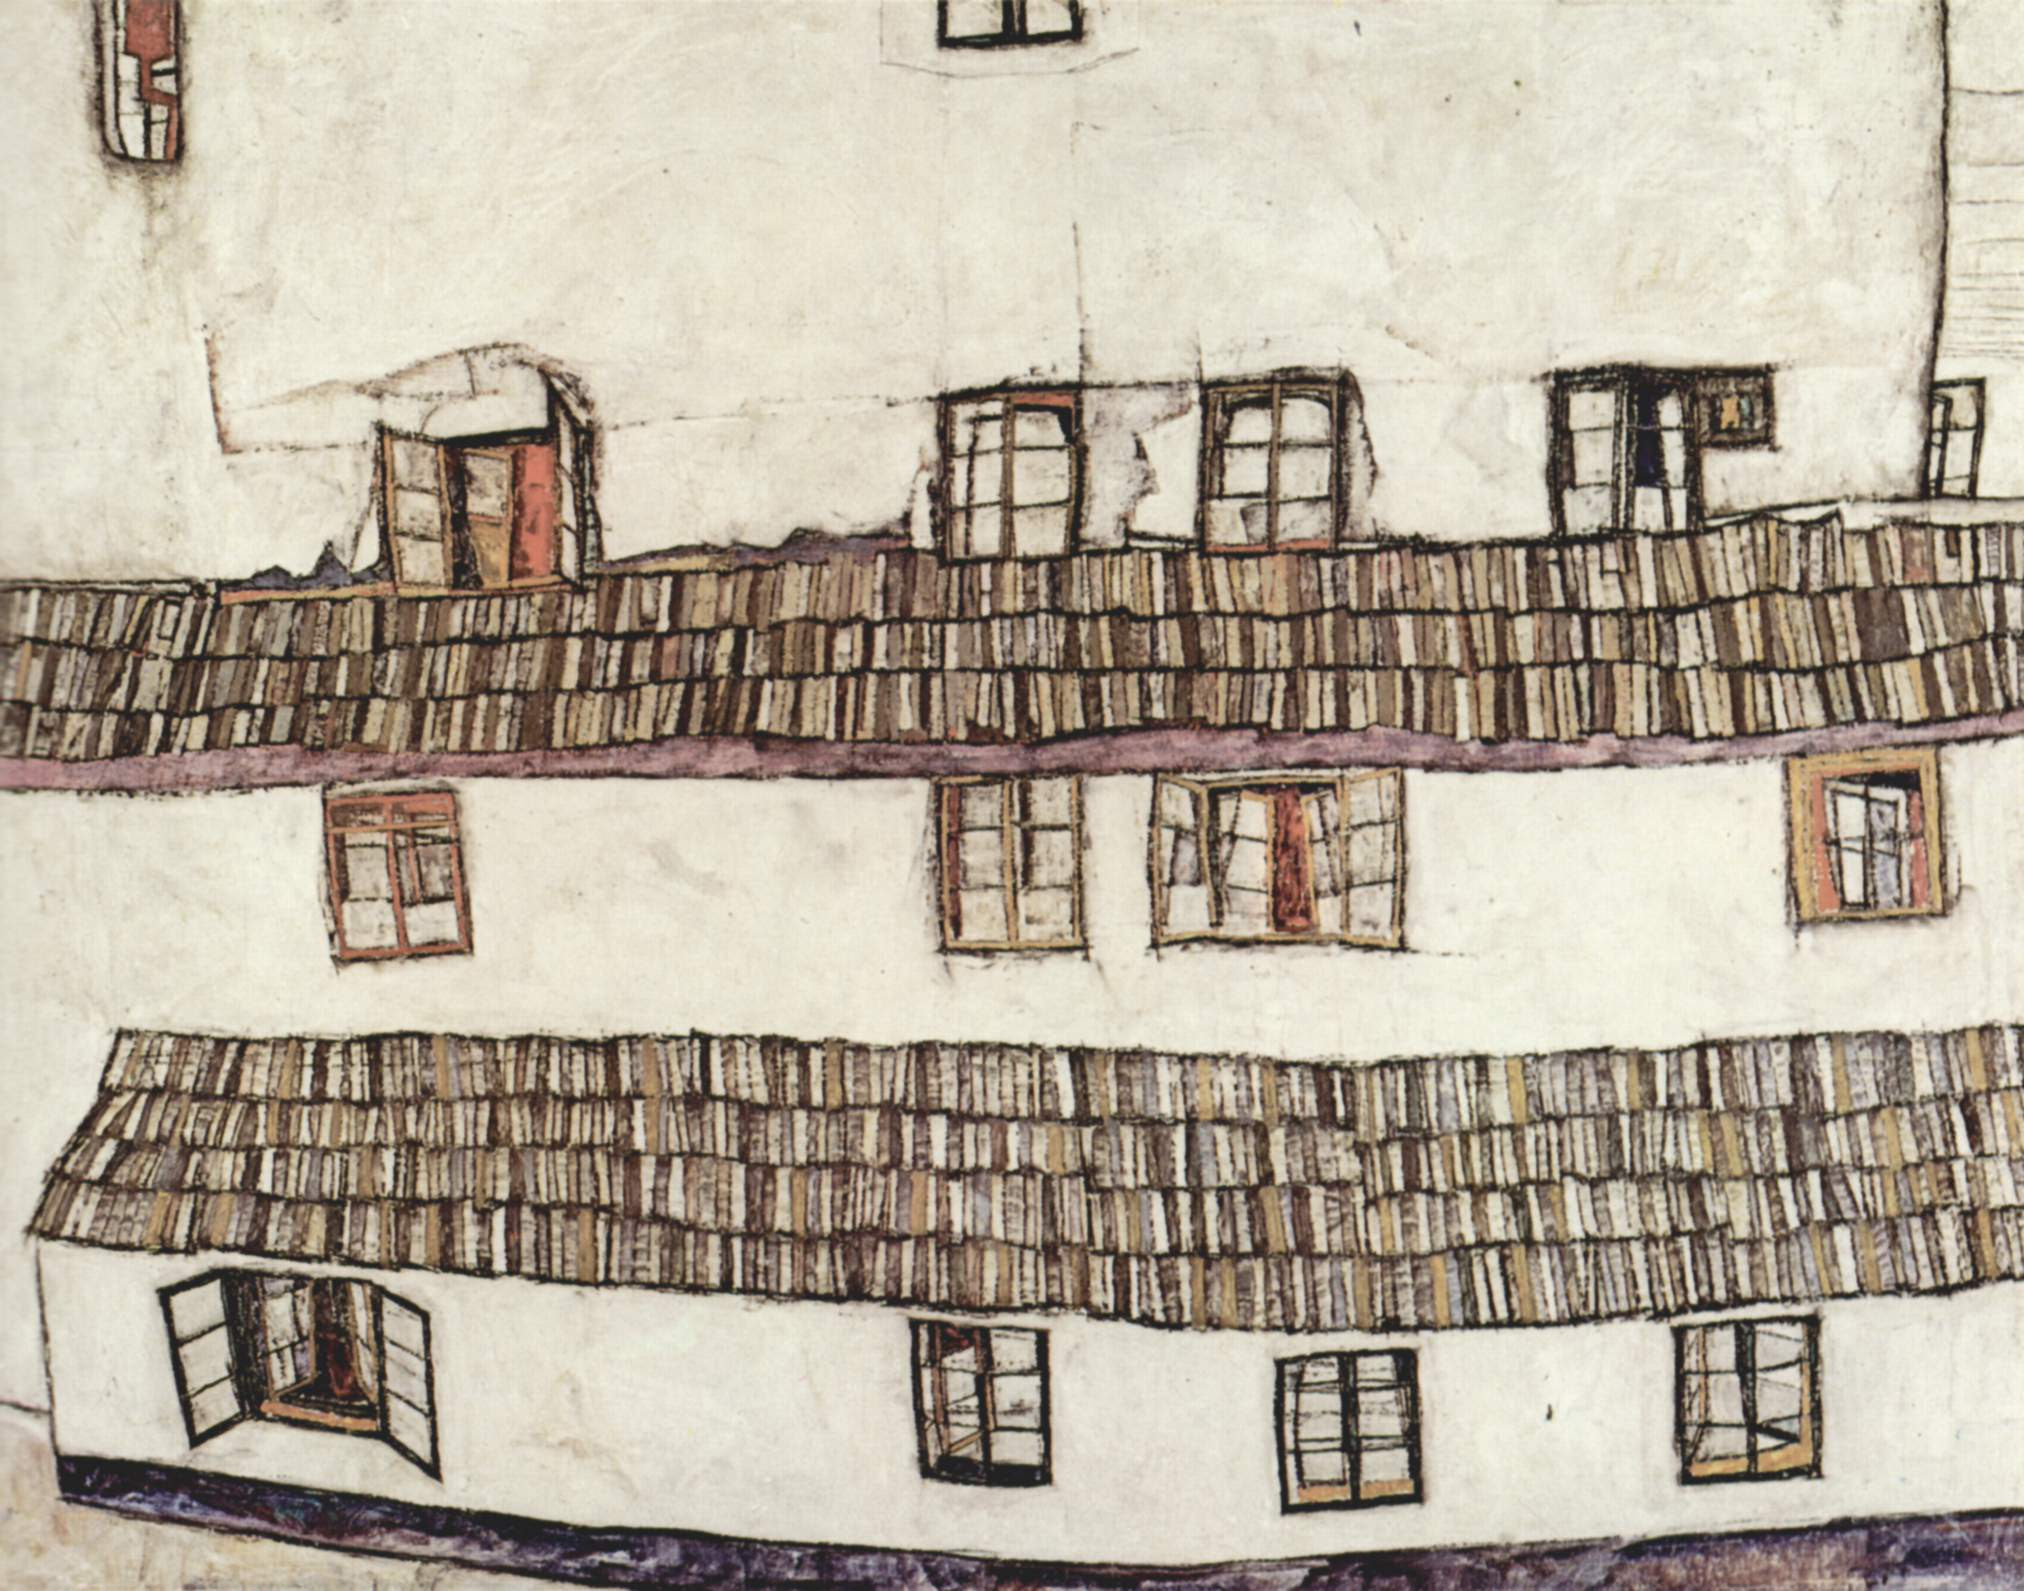 http://upload.wikimedia.org/wikipedia/commons/5/53/Egon_Schiele_019.jpg